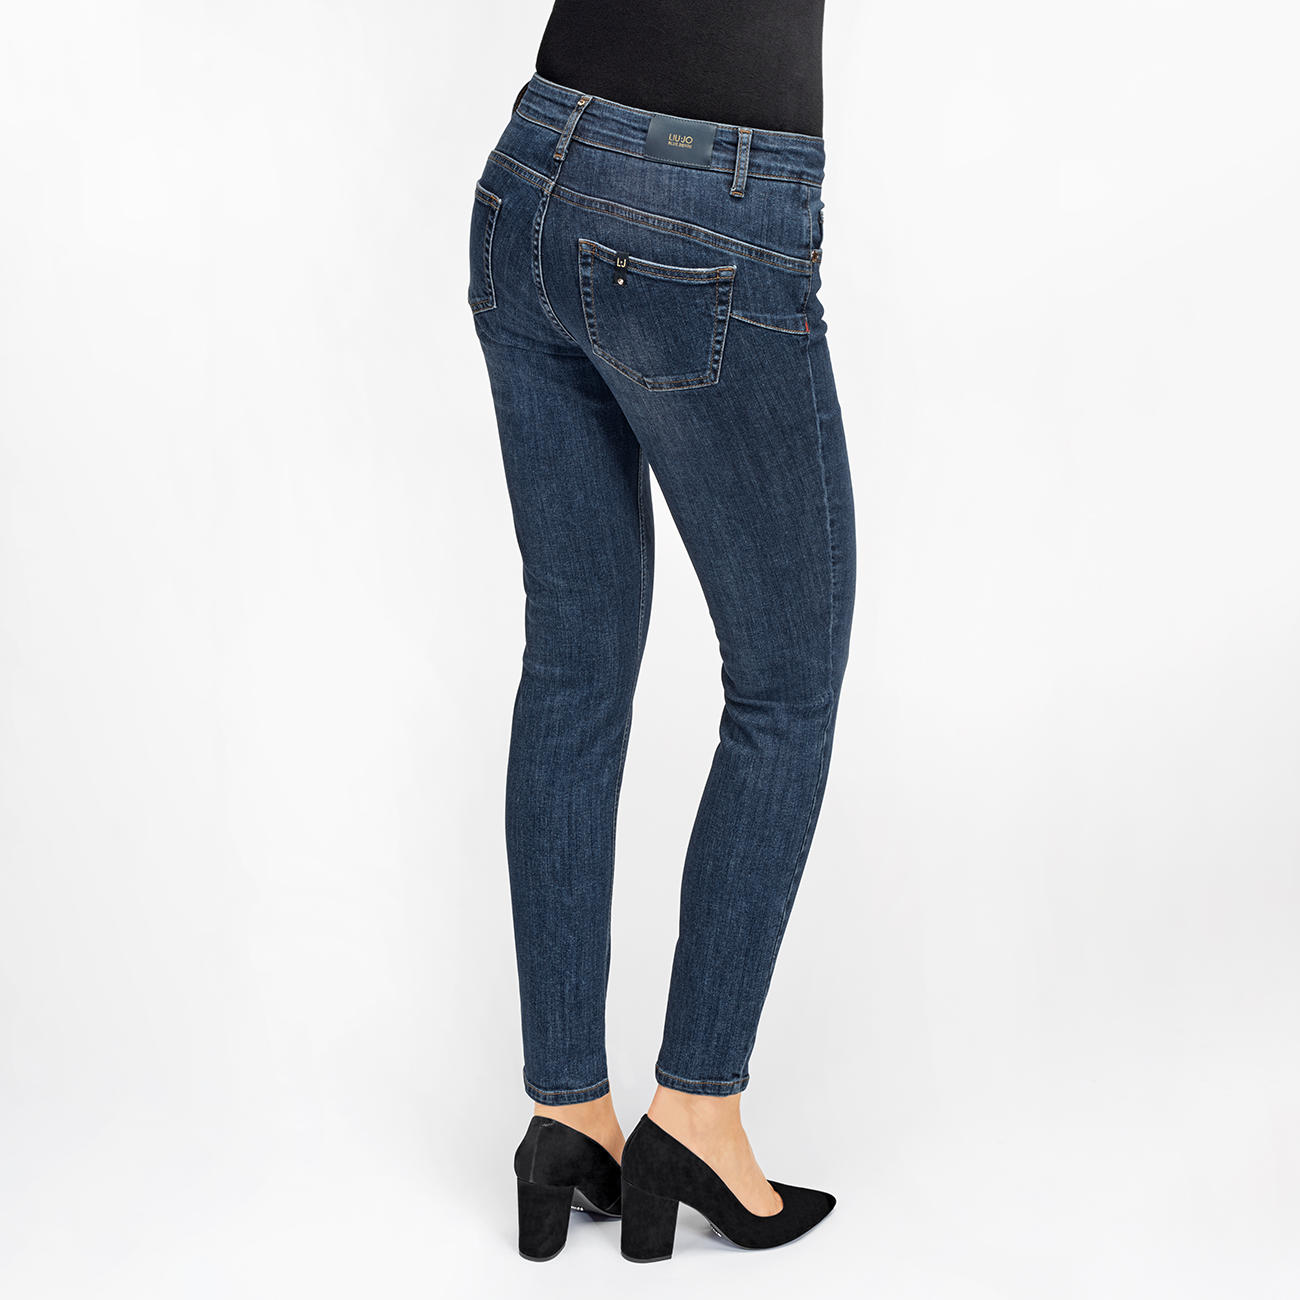 online store a7e68 91517 Liu Jo Jeans Bottom Up Ankle Jeans discover